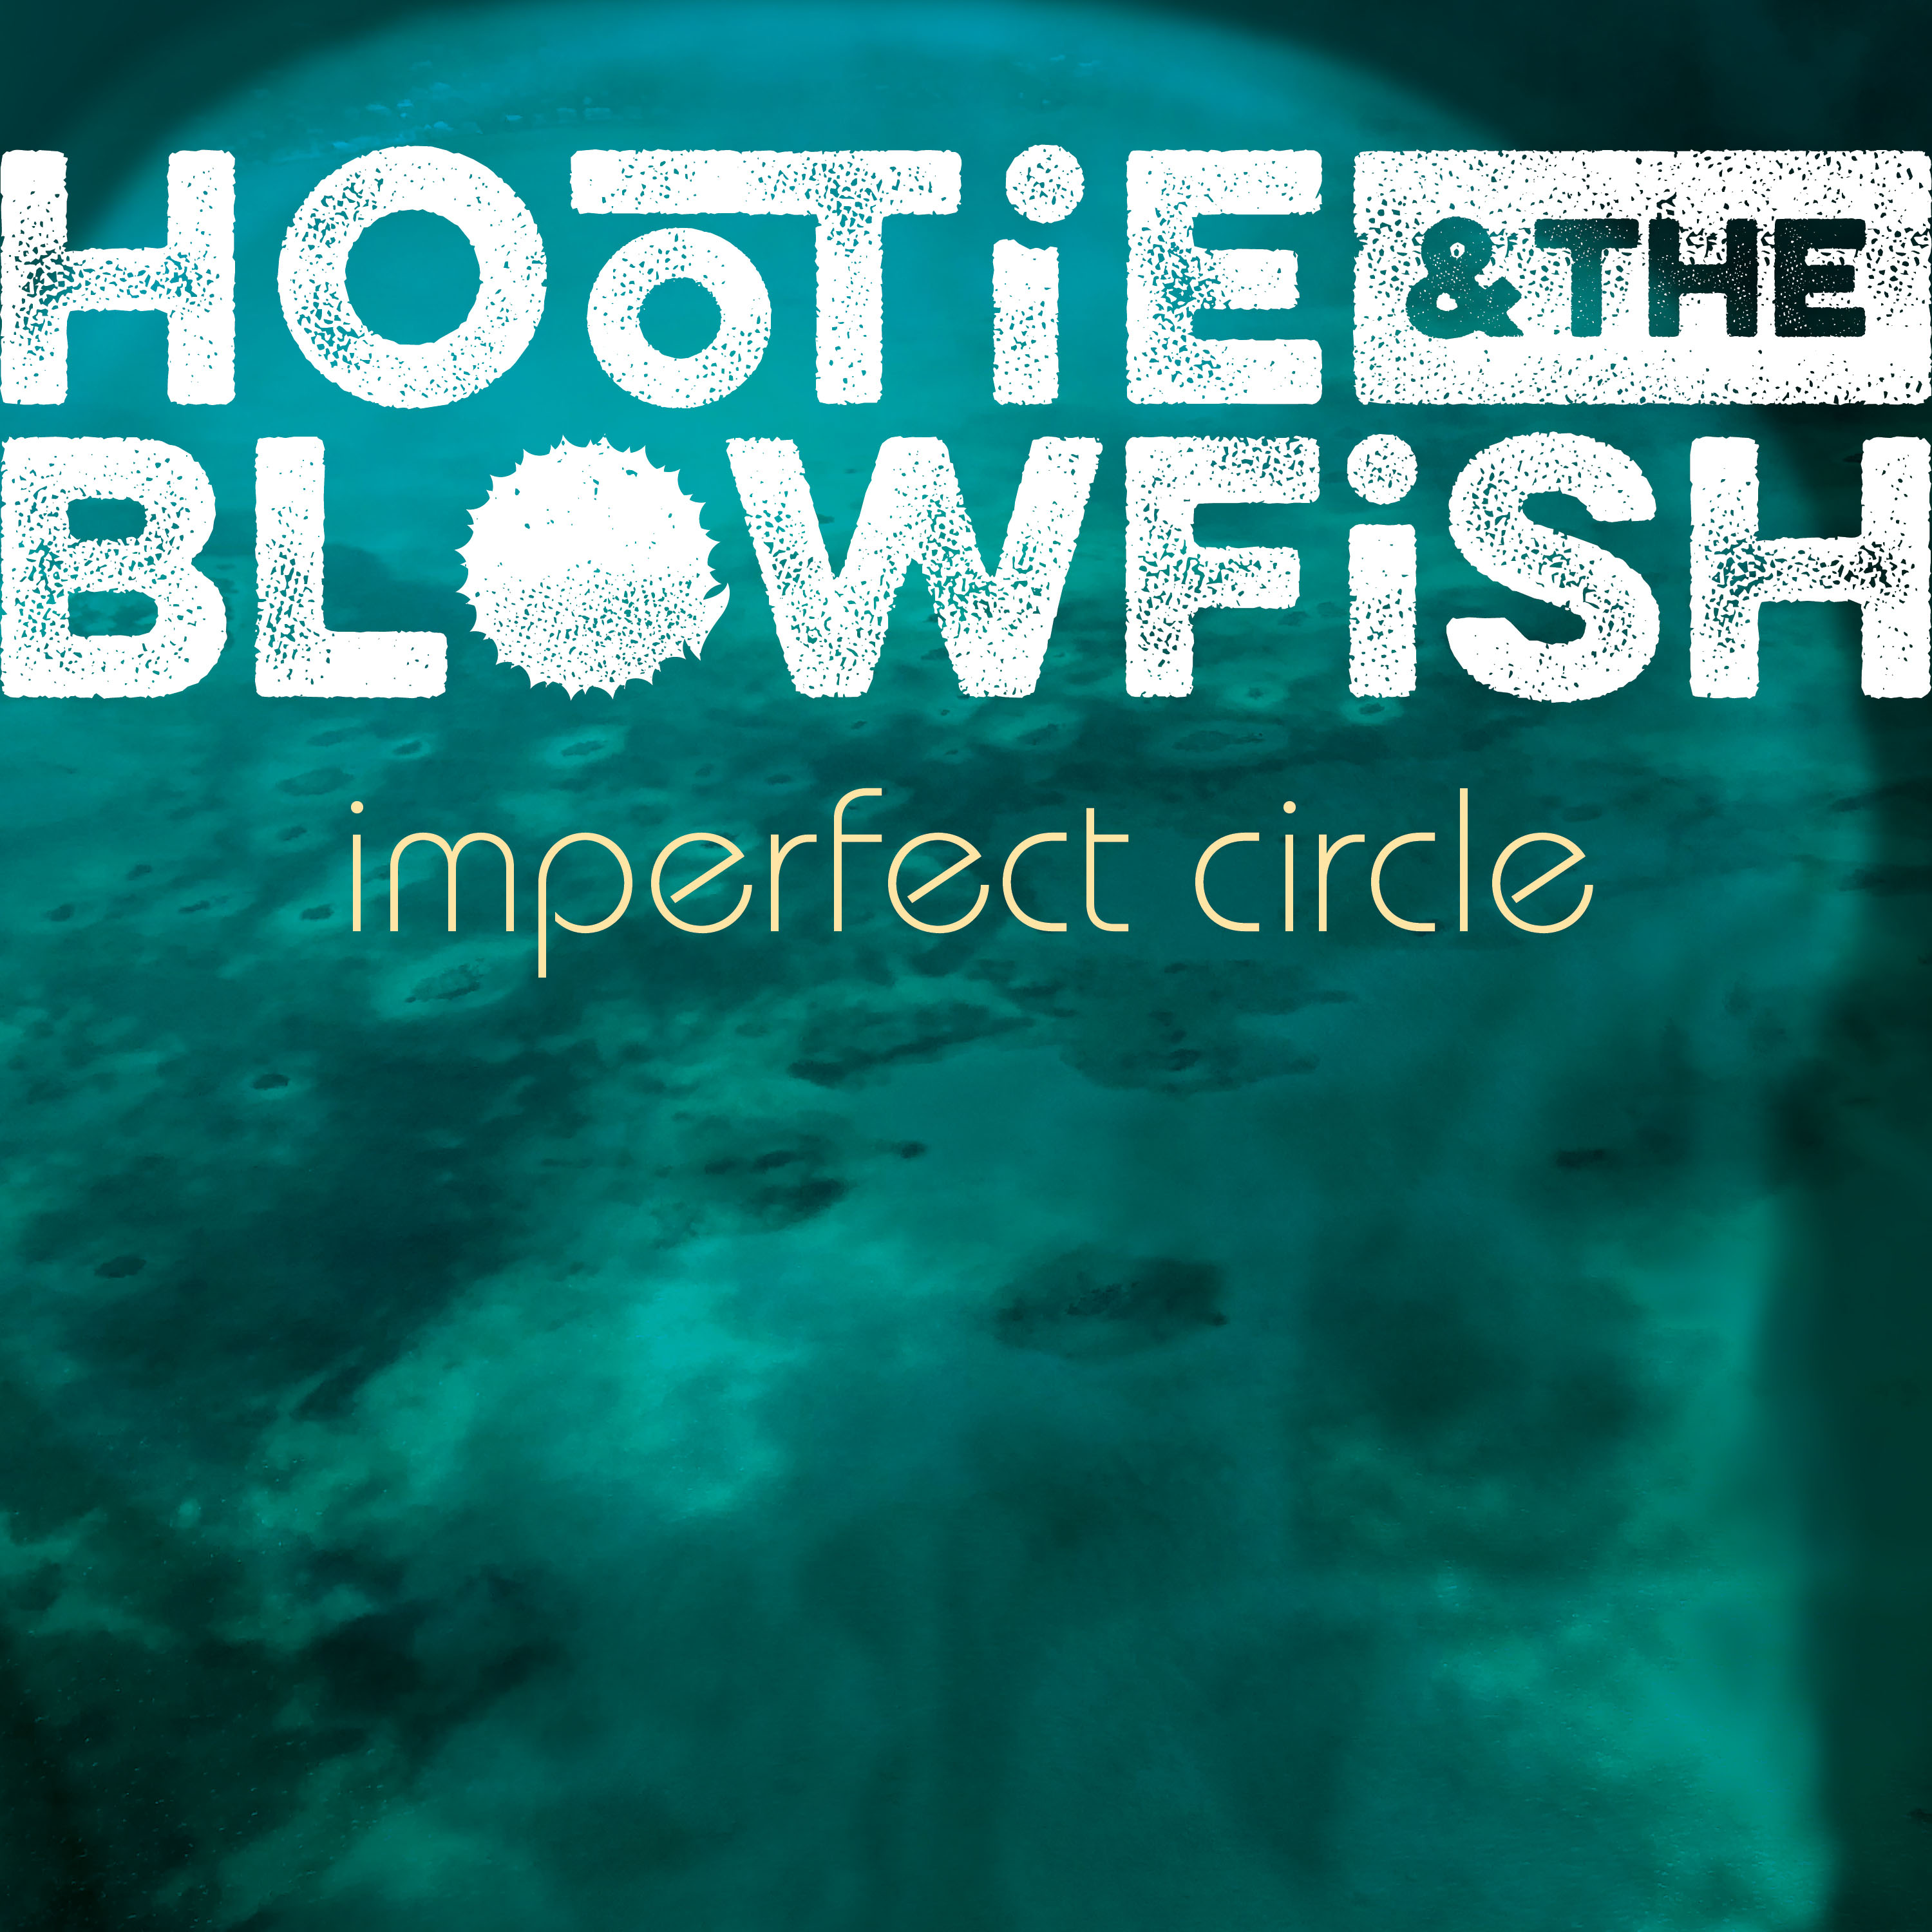 New Hootie & The Blowfish Song